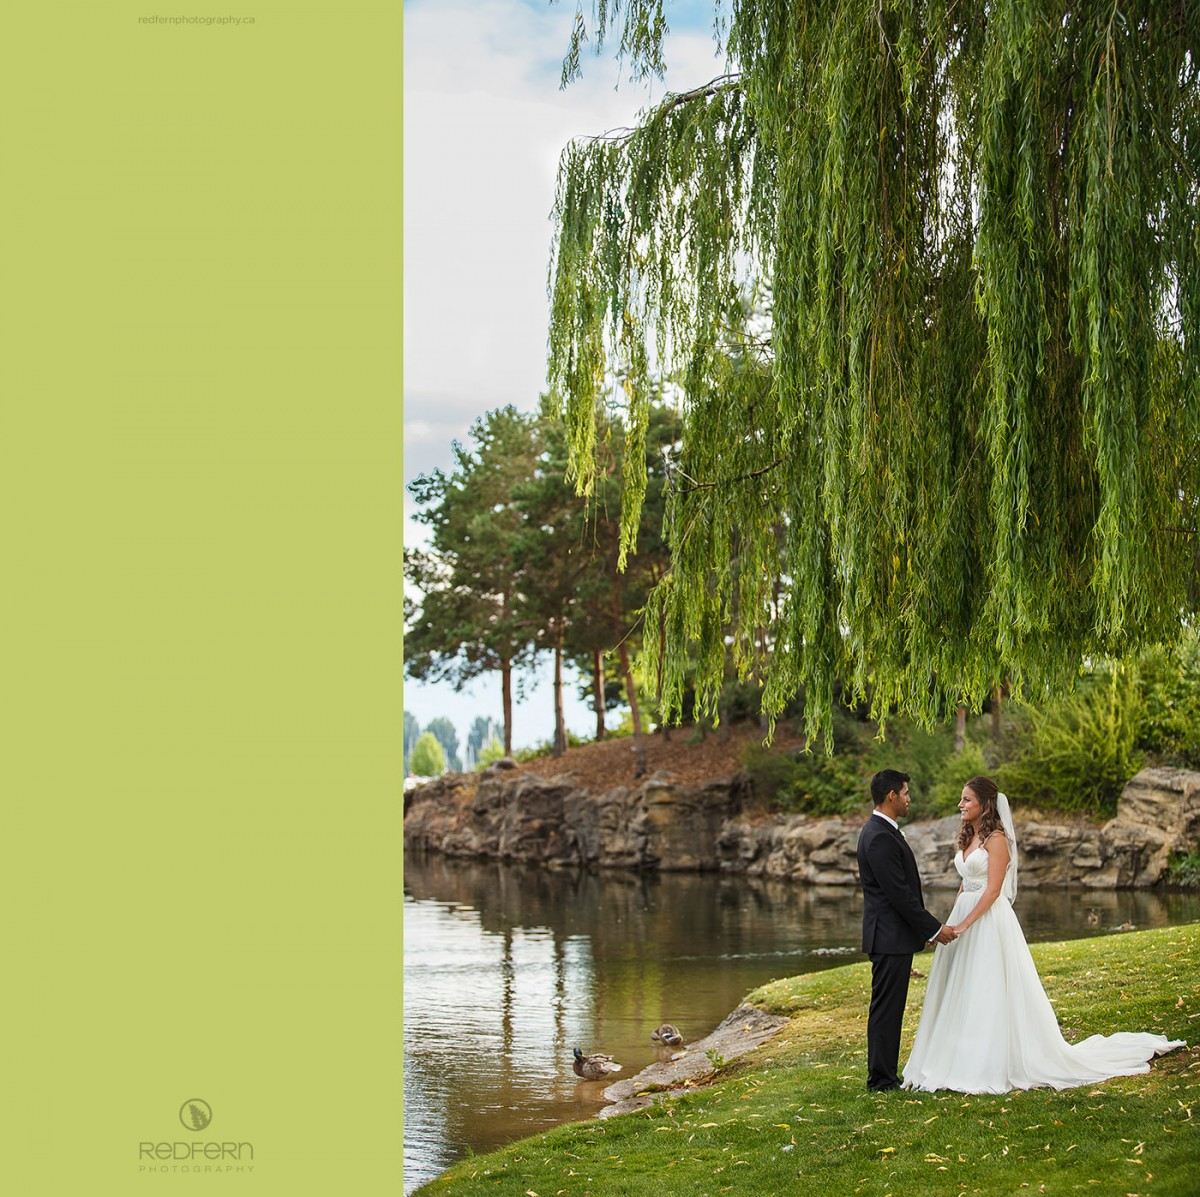 kelowna wedding pictures city park under willow tree